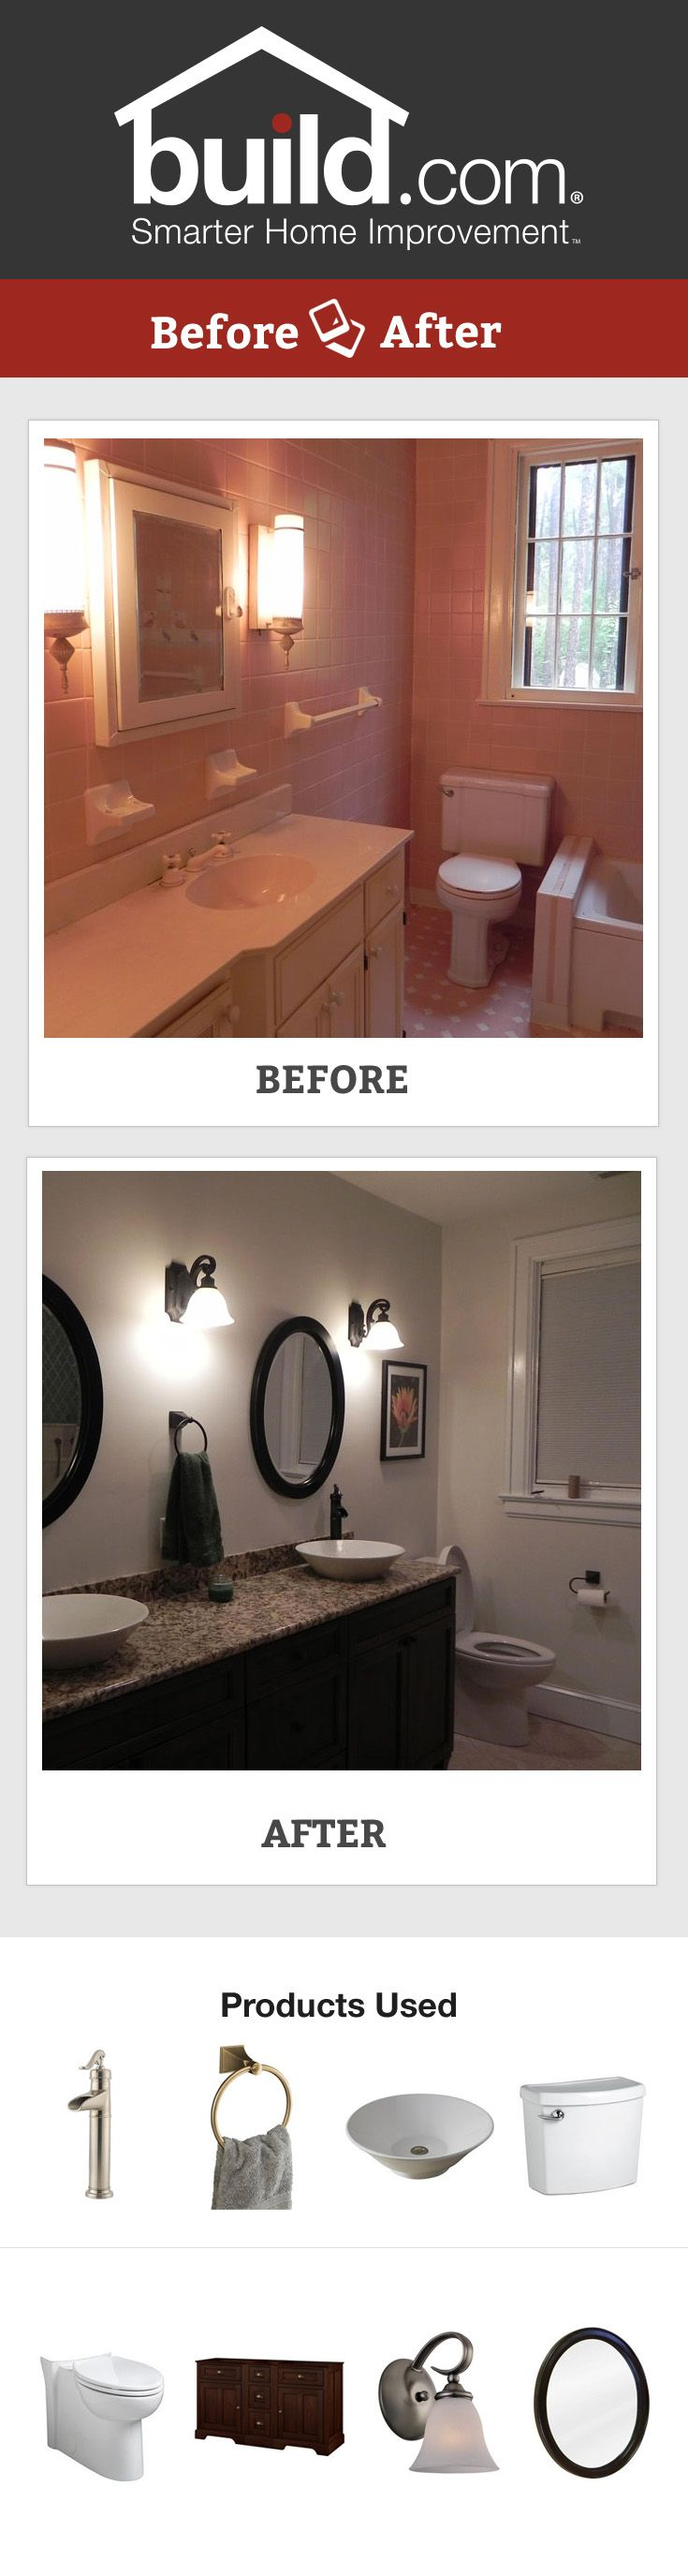 Attic bathroom remodel before after bathroom ideas pinterest - Looking For Bathroom Remodel Ideas Check Out This Bathroom Before And After Going From